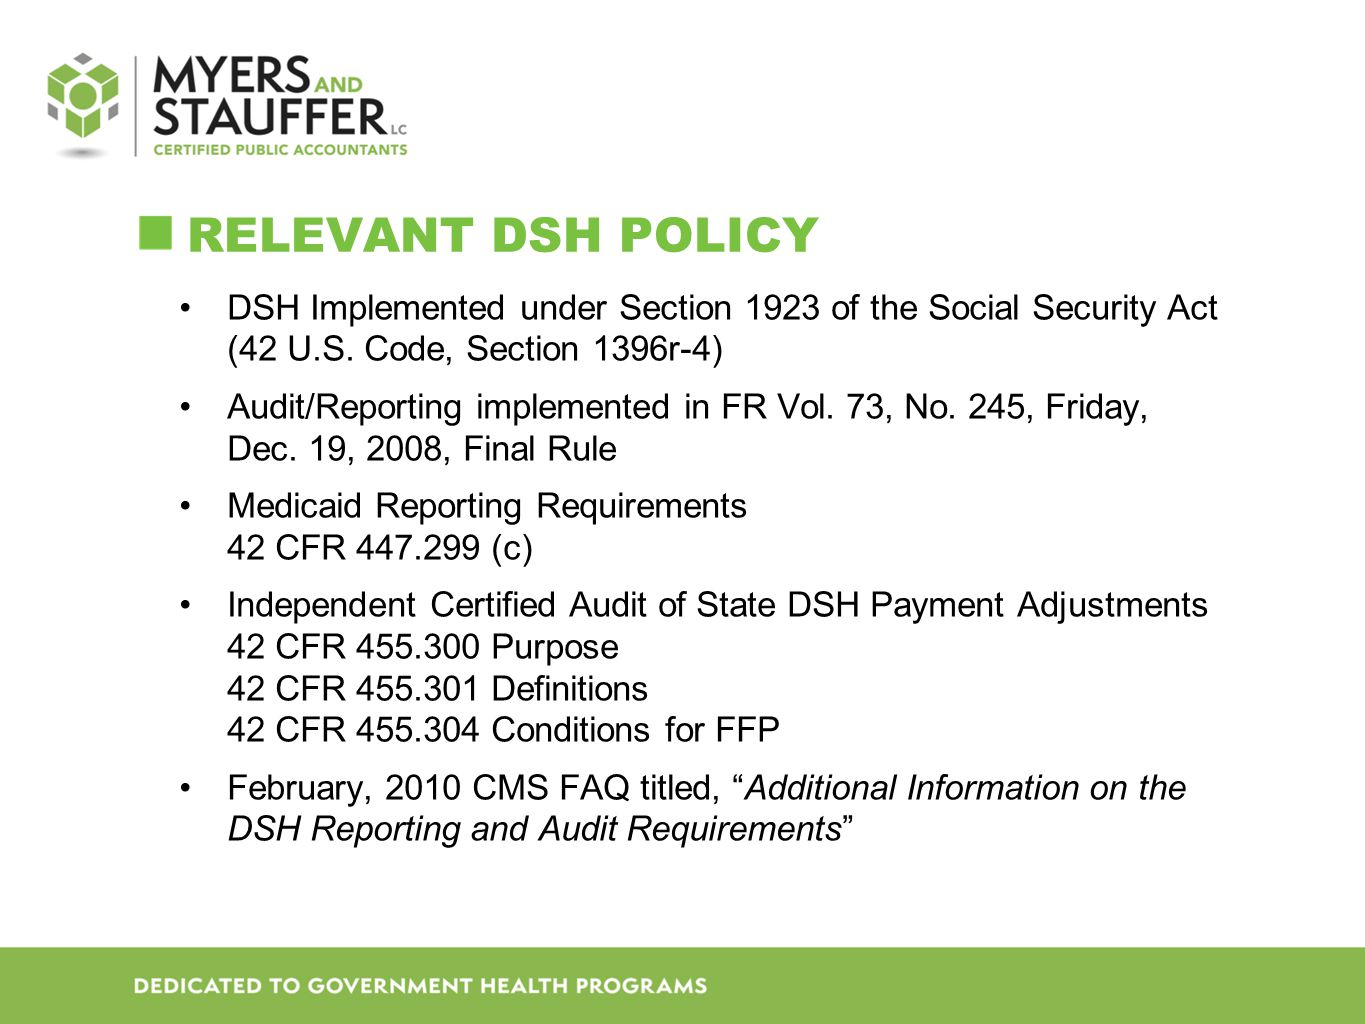 ReLevant DSH Policy DSH Implemented under Section 1923 of the Social Security Act (42 U.S. Code, Section 1396r-4)